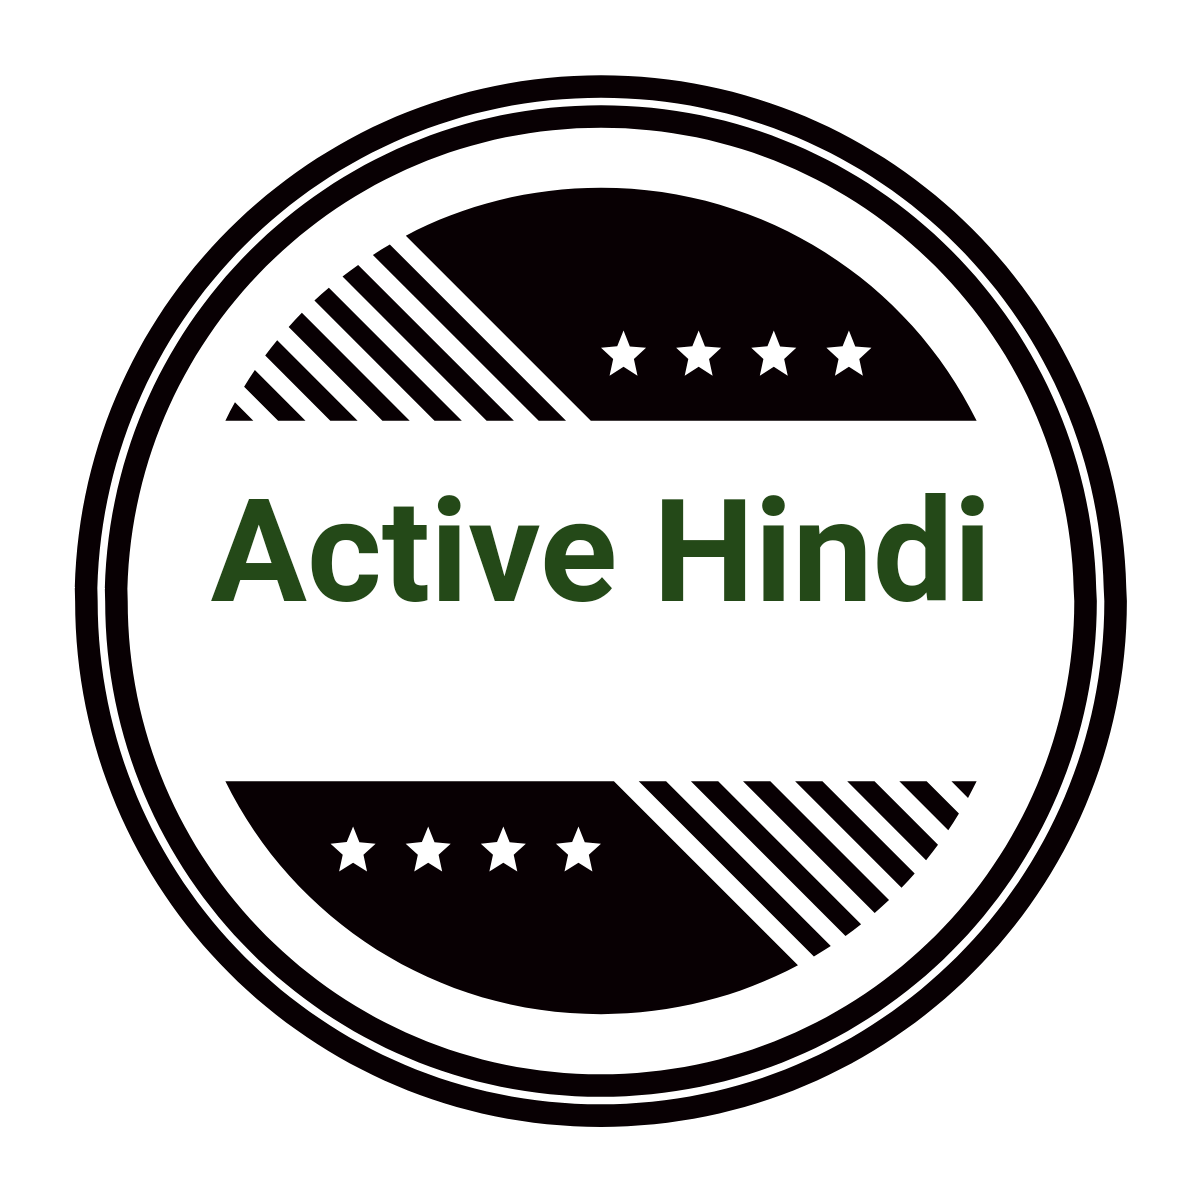 Amazing Facts In Hindi, News, Health, Activehindi